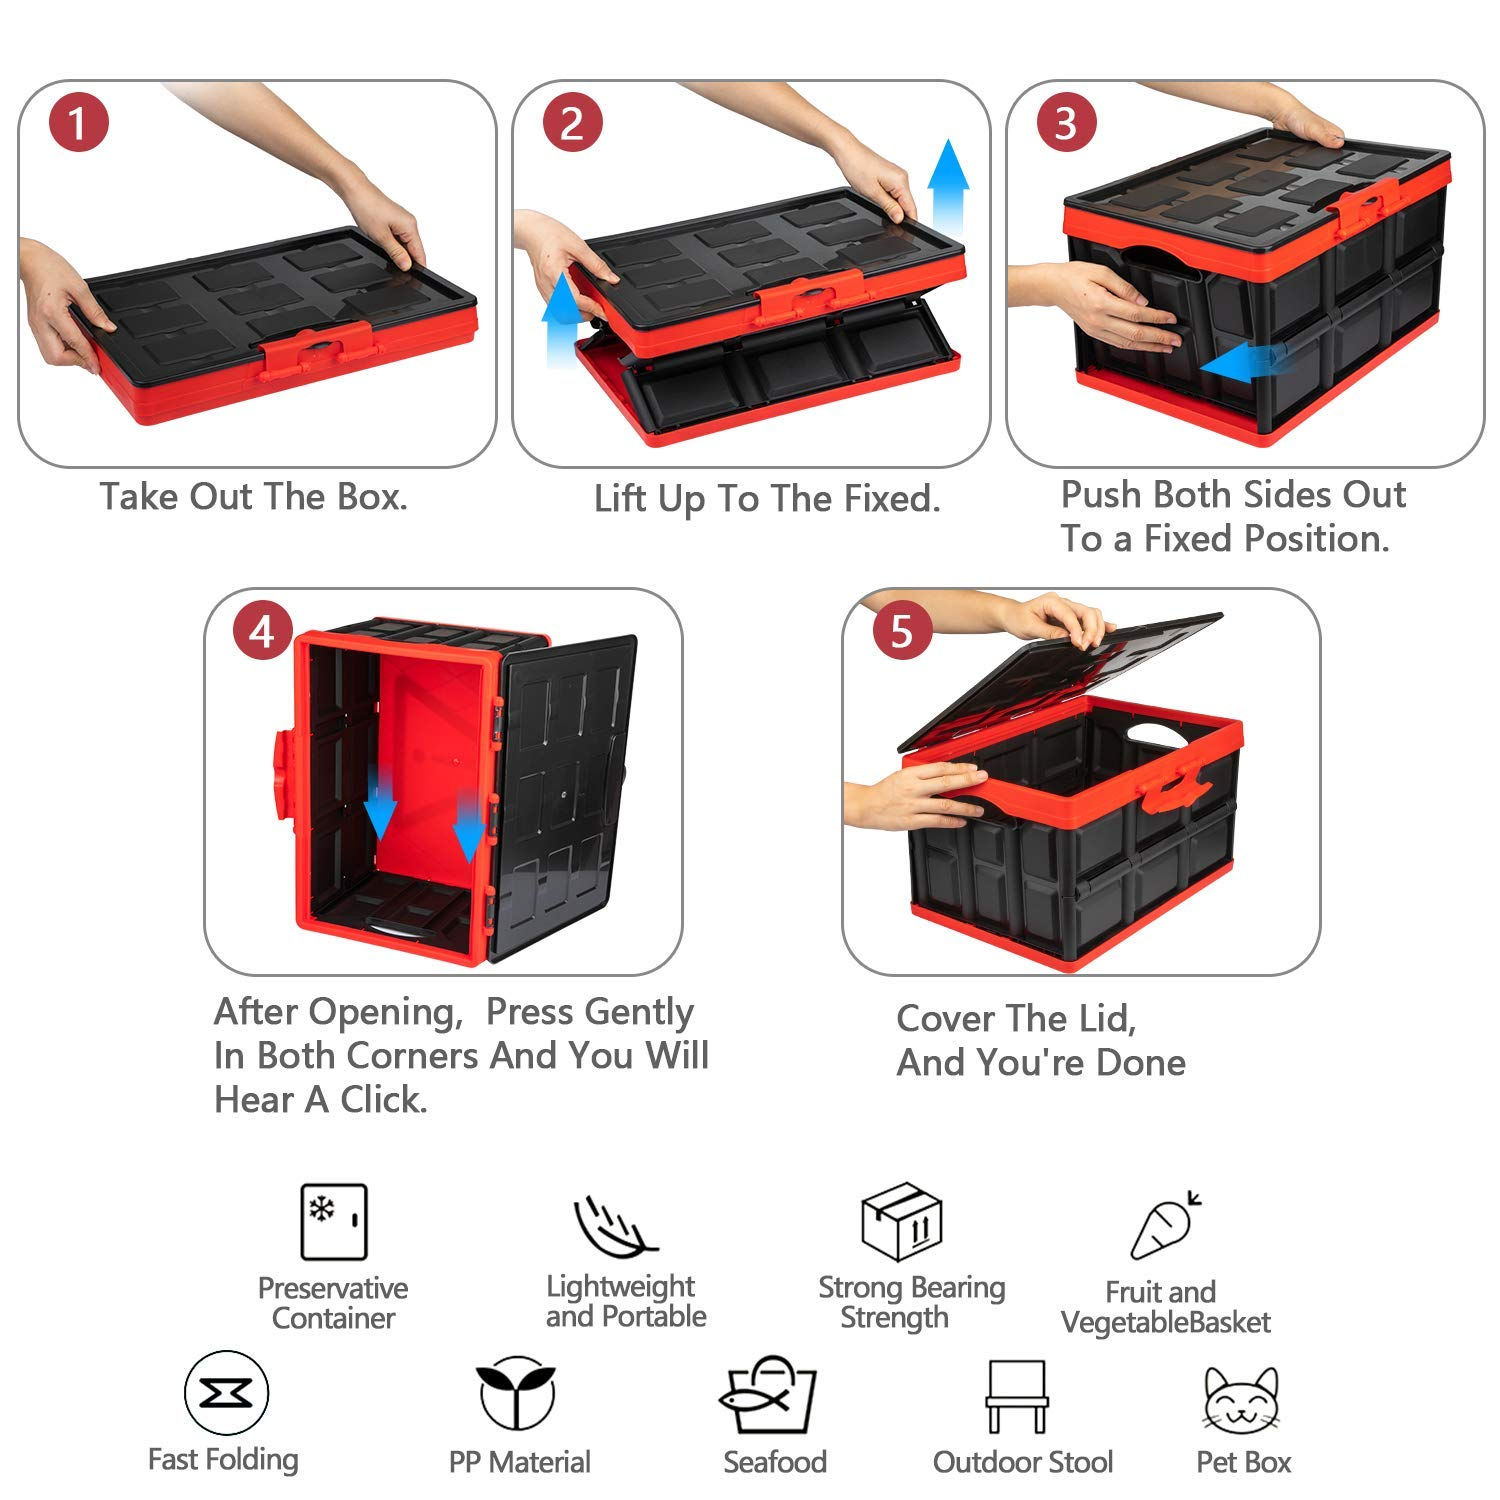 Homesprit Collapsible Car Trunk Storage Box Undeformed Plastic Odorless Car Trunk Organizer Reusable Folding Moving Box Perfect for Home,Camp,Travel//with Reflective Sticker,Waterproof Bag,Lid. Small